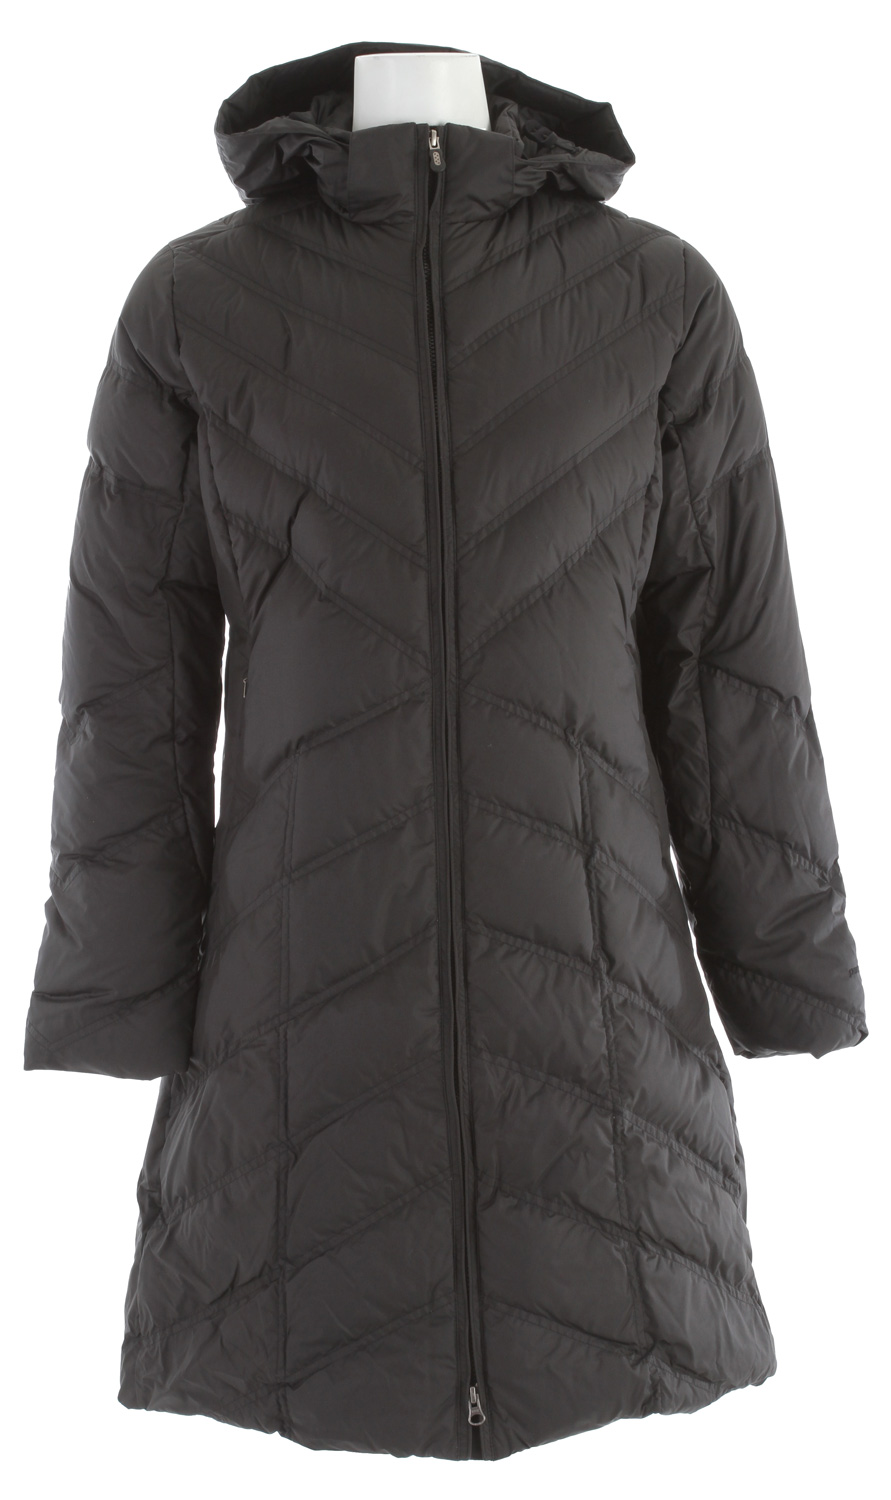 With a 100% recycled polyester shell, our knee-length down coat is for winter's coldest days and insulated with 600-fill-power premium European goose downKey Features of the Patagonia Down With It Parka: 600-fill-power premium European goose down Removable hood adjusts with two drawcords 2-way front zipper with wind flap Zippered on-seam handwarmer pockets; interior zippered chest pocket Unquilted side panels for a sleek silhouette Knee length Slim fit (27.7 oz) 785 g fabric: 2.3-oz 100% recycled polyester with a Deluge DWR (durable water repellent) finish. Insulation: 600-fill-power premium European goose down - $194.95